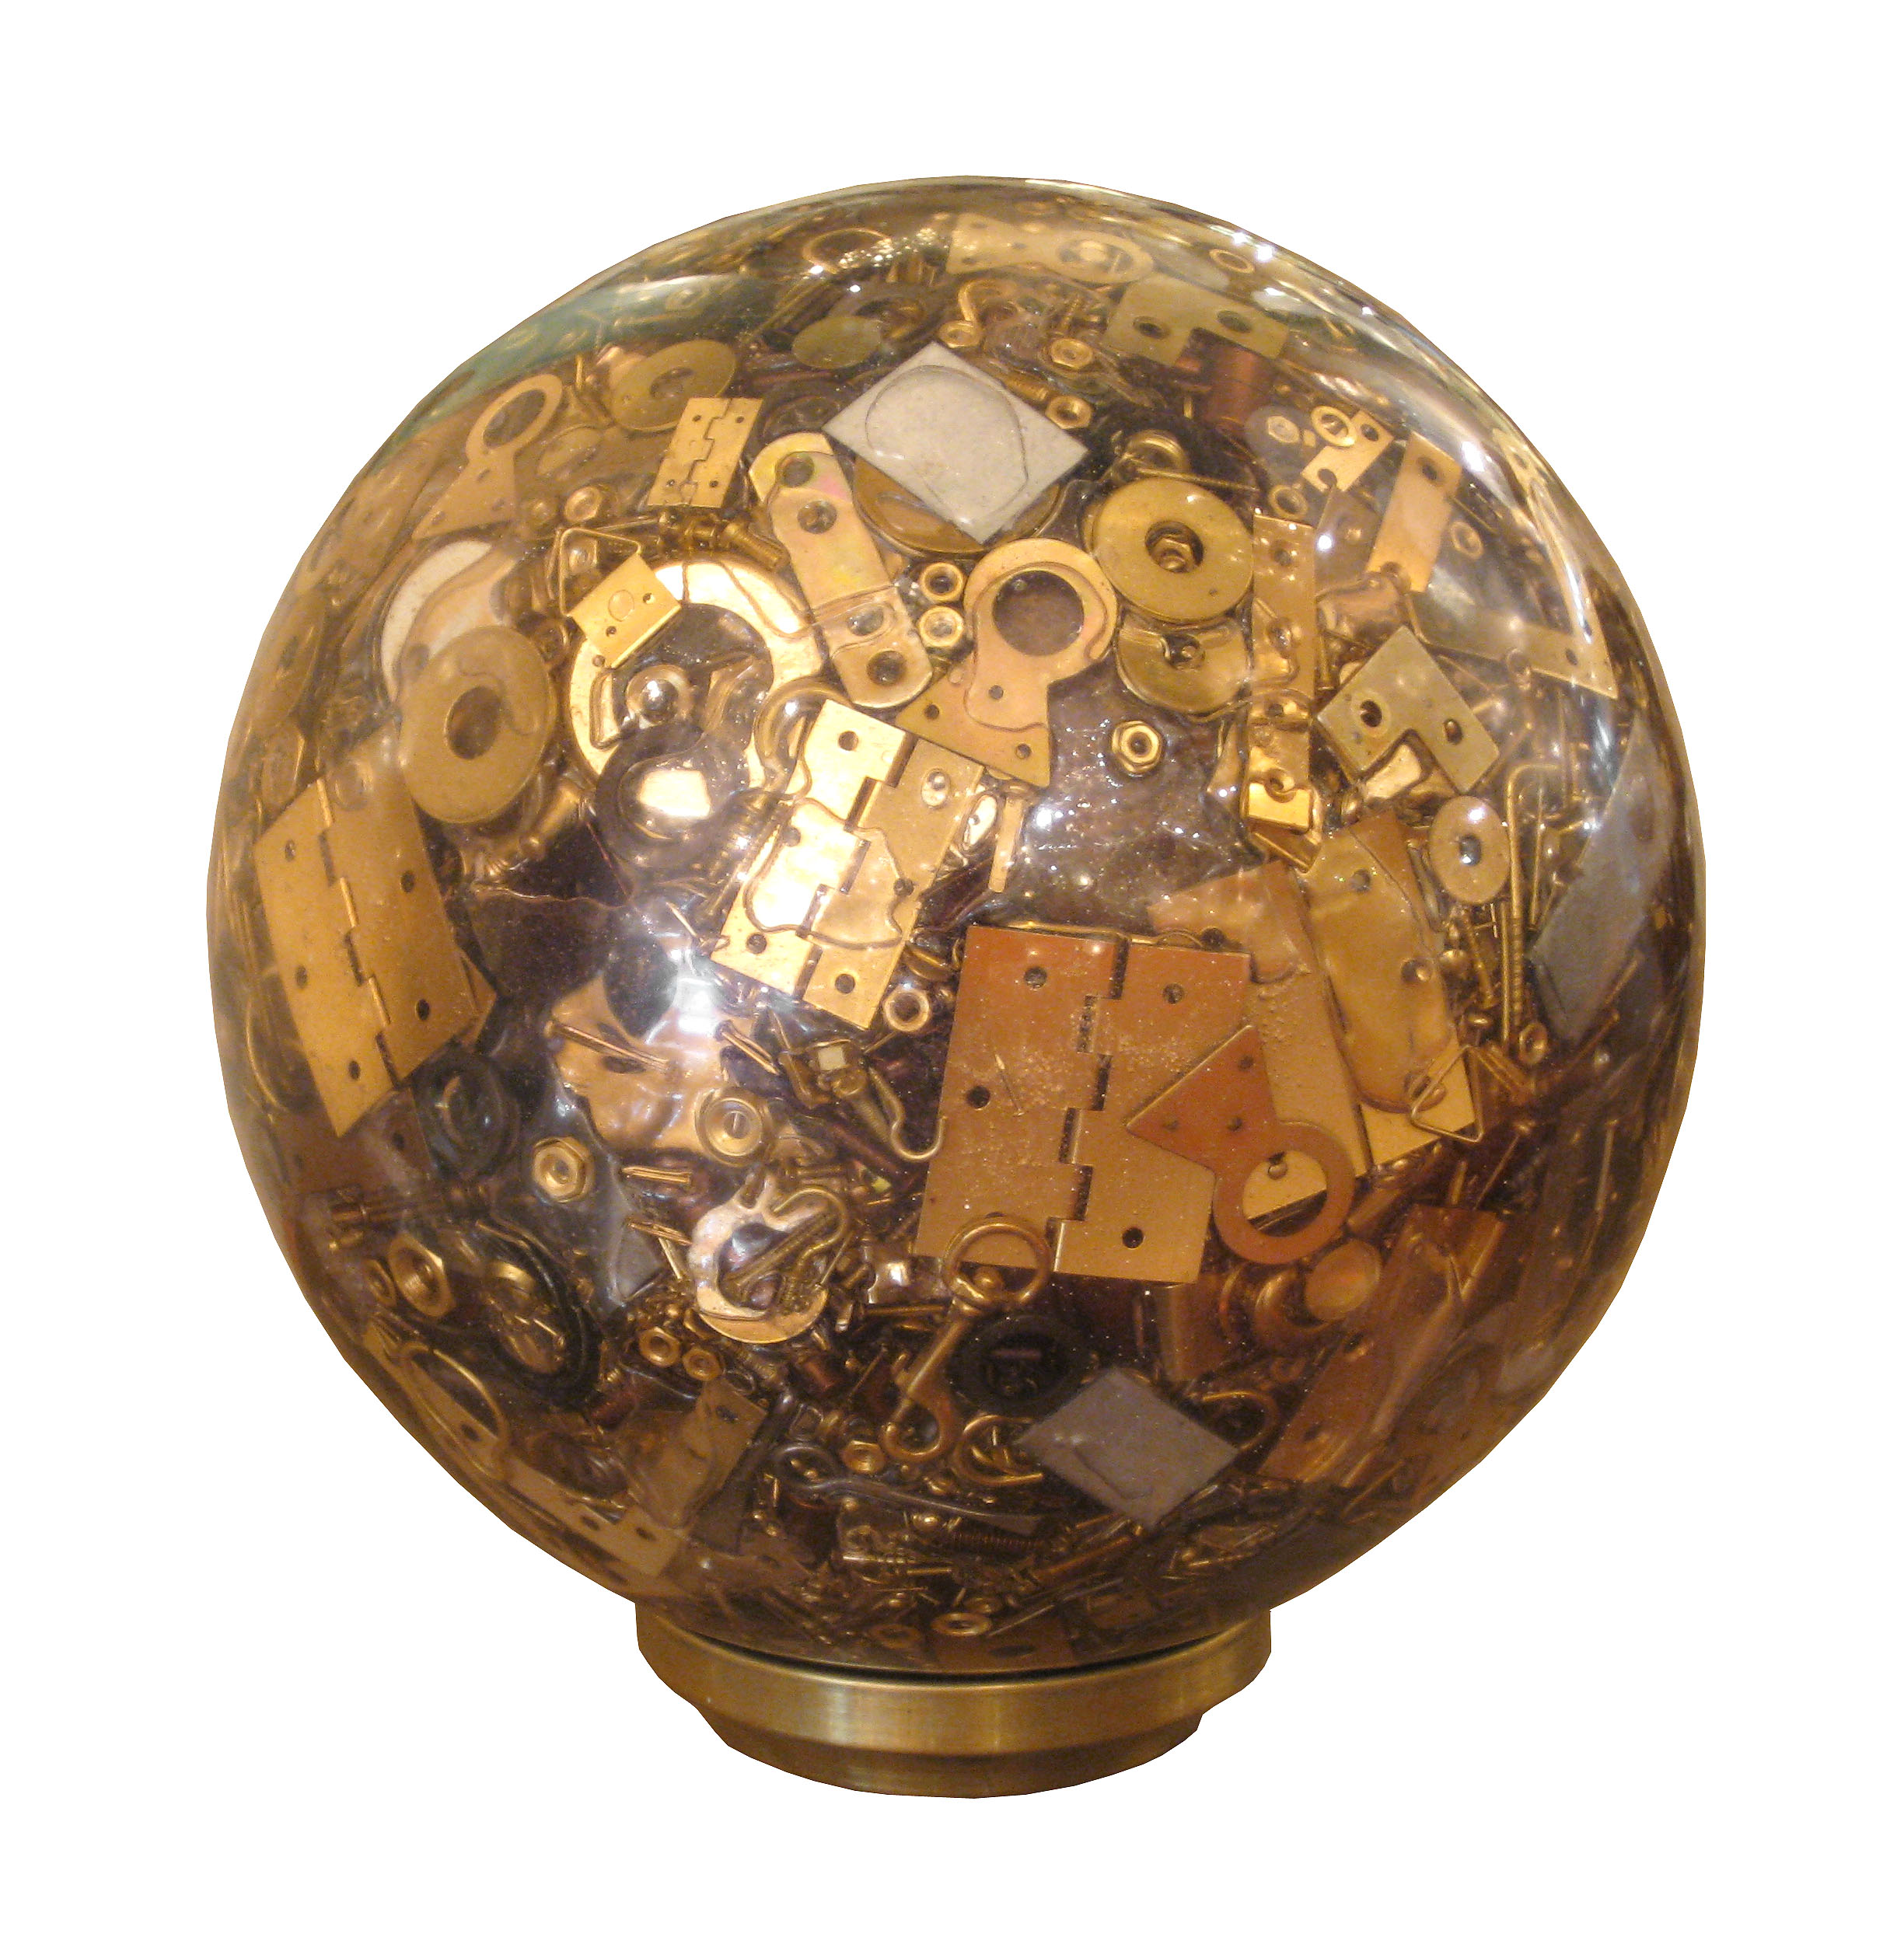 Clear Resin Sphere Containing Miscellaneous Vintage